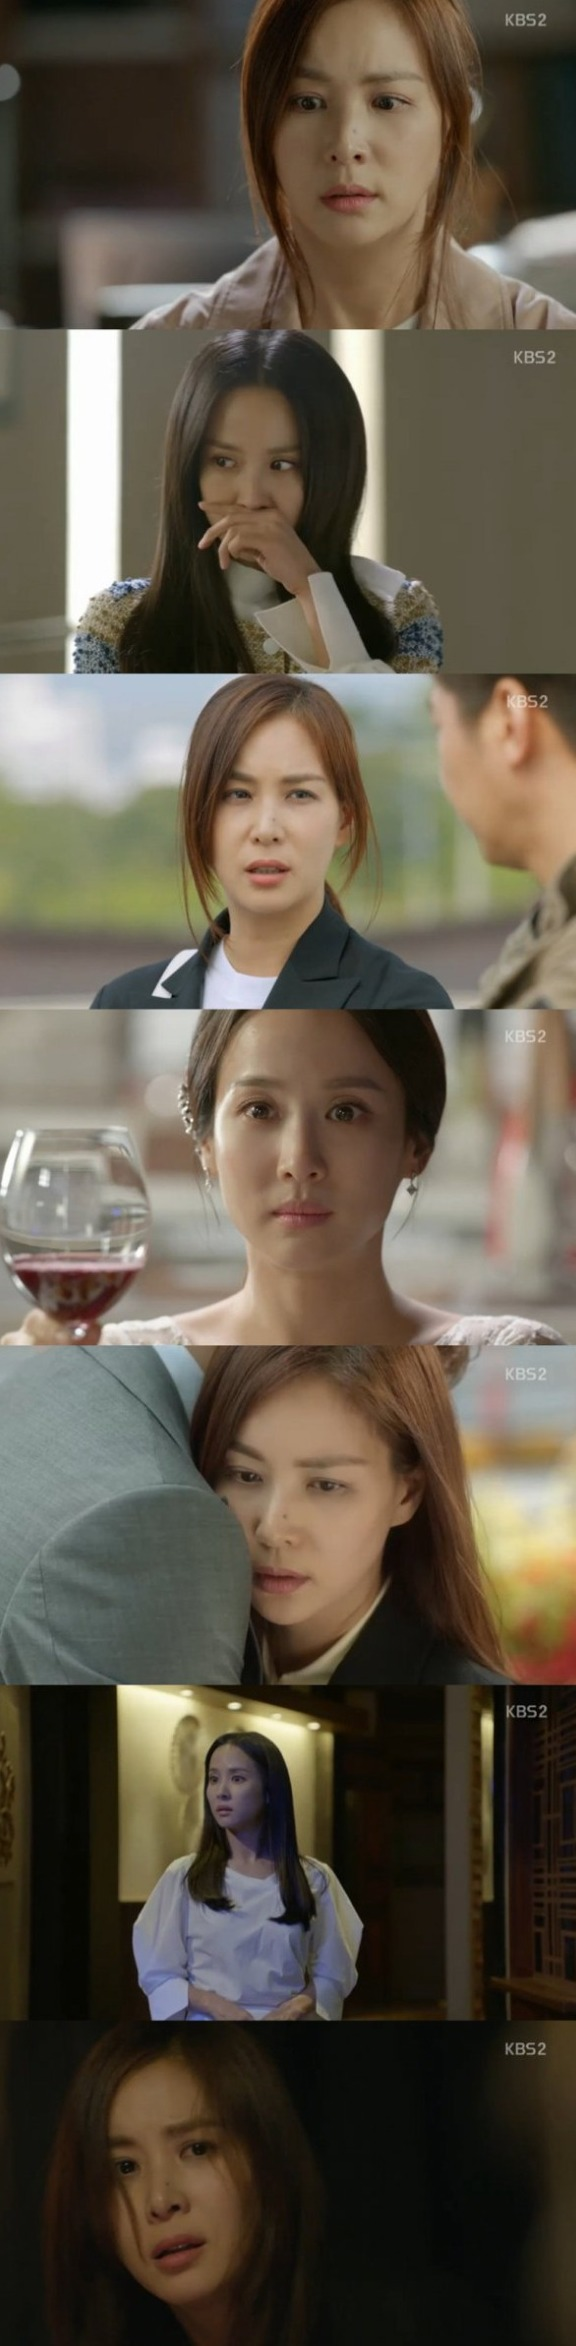 [Spoiler] Added finalepisode 20 captures for the Korean drama 'The Perfect Wife'